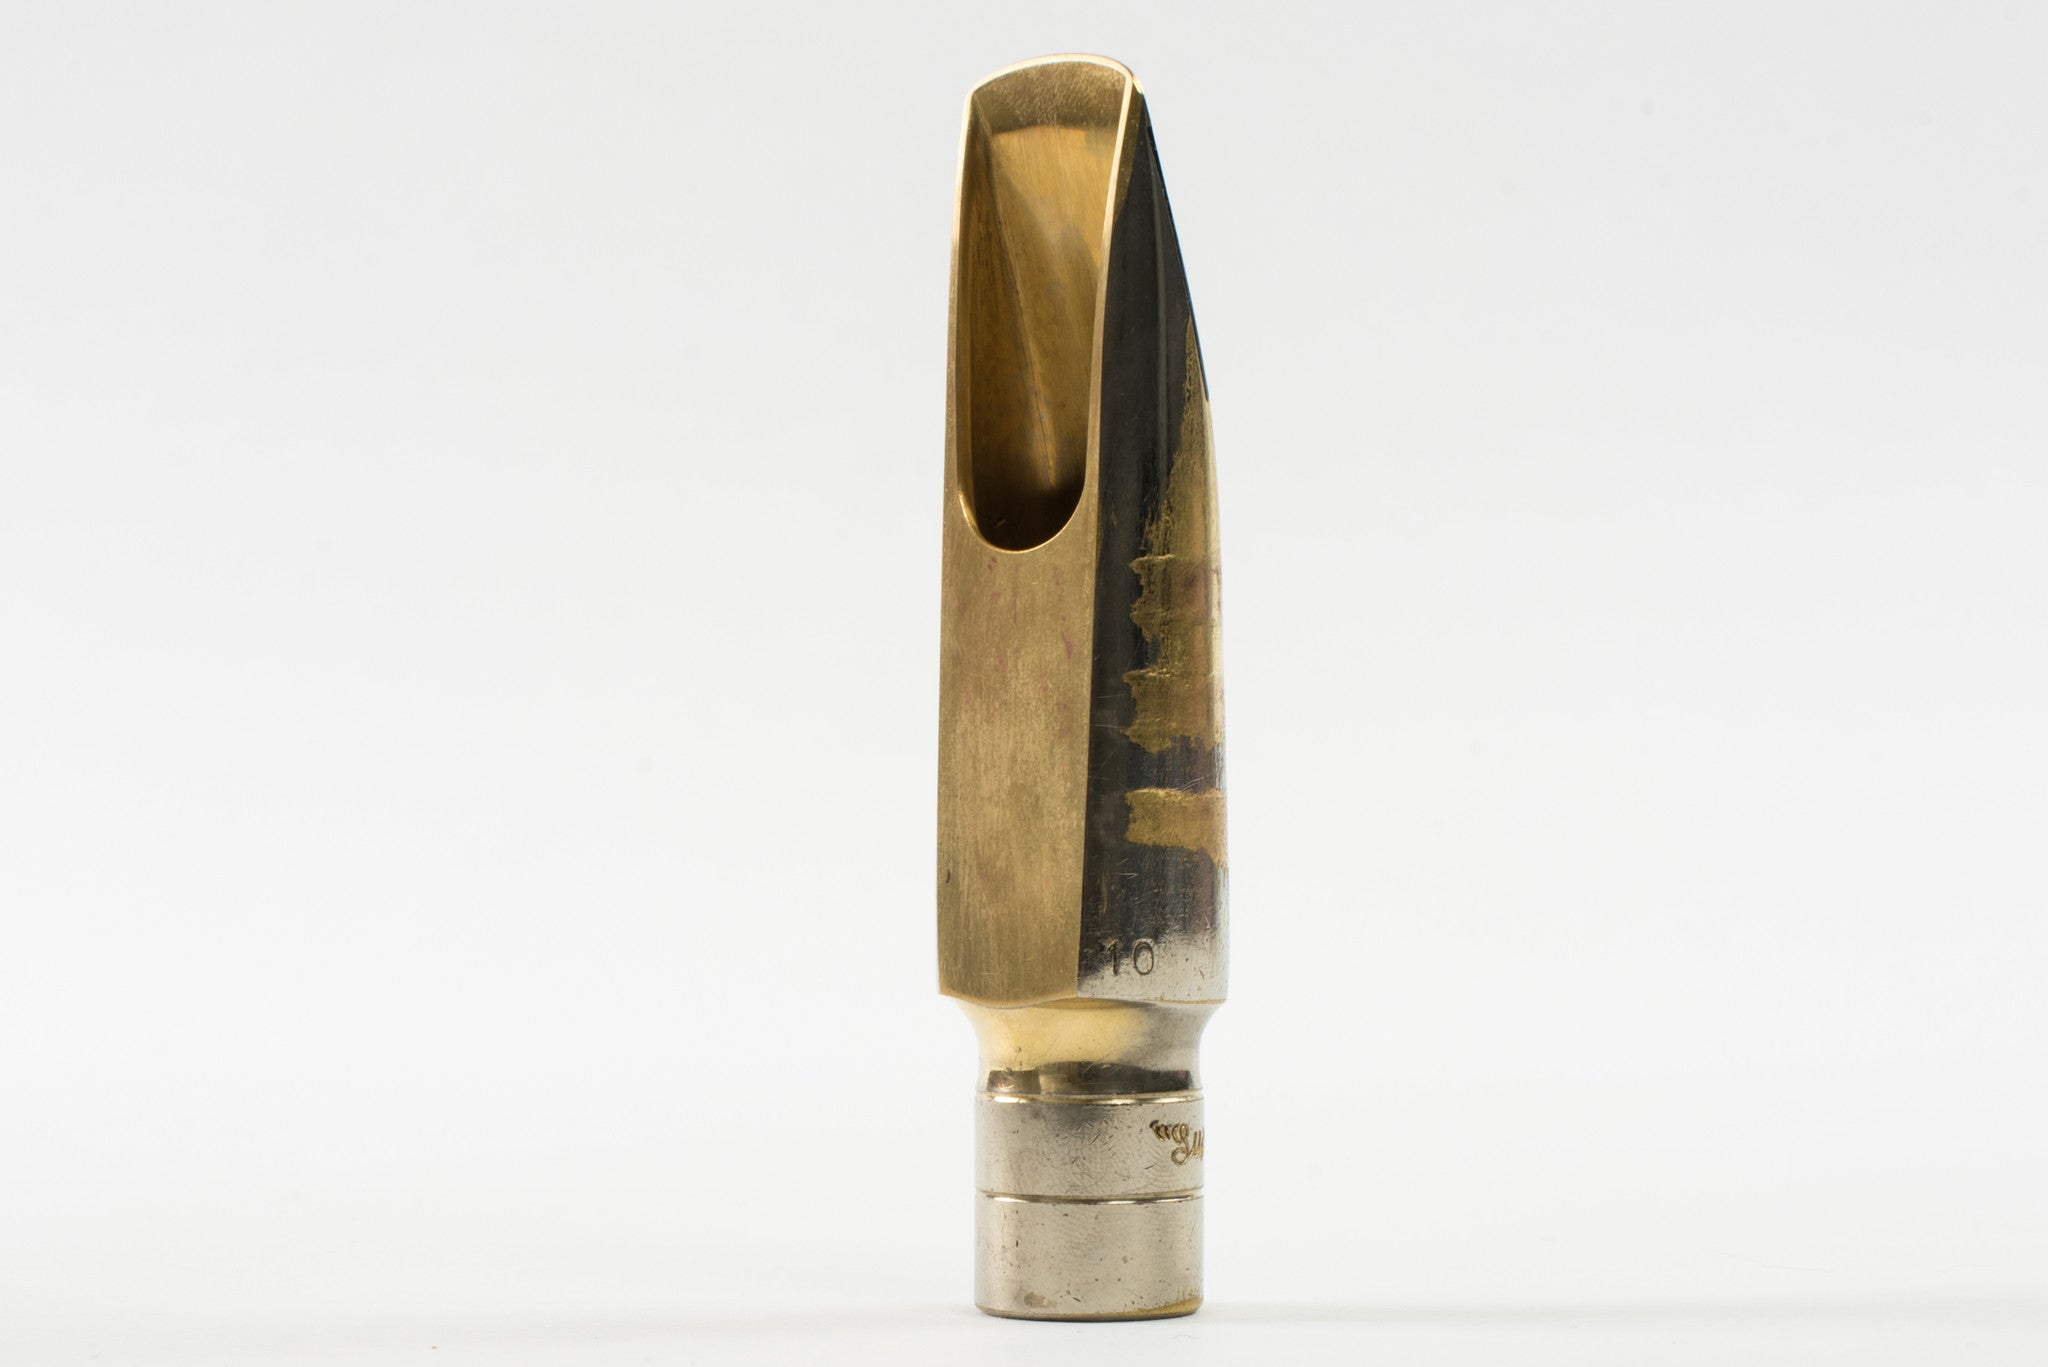 1950's Otto Link Super Tone Master No USA Tenor Saxophone Mouthpiece With 8 Facing